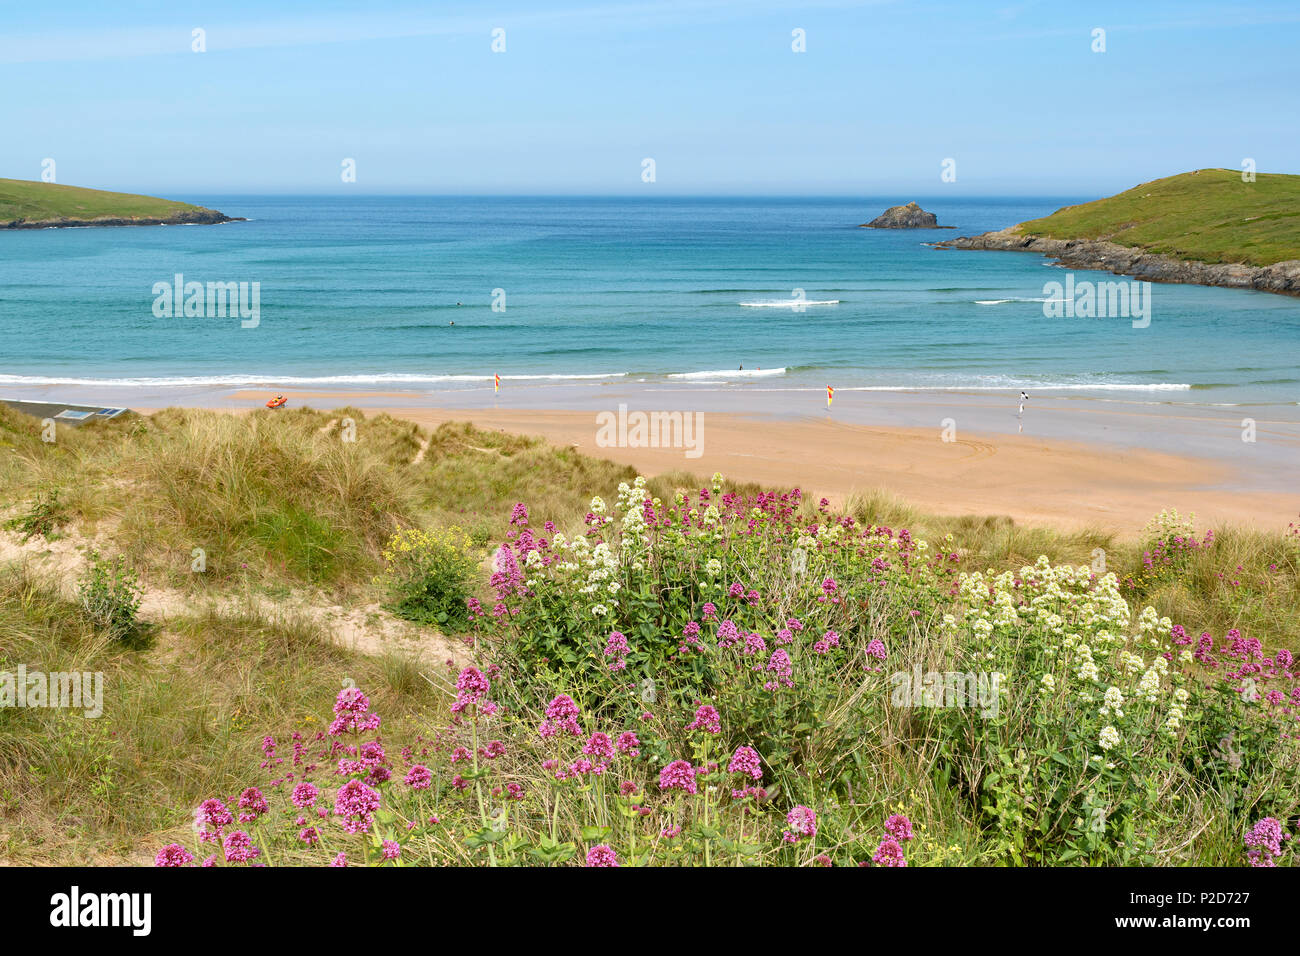 summer at crantock beach near newquay in cornwall, england, britain, uk, - Stock Image